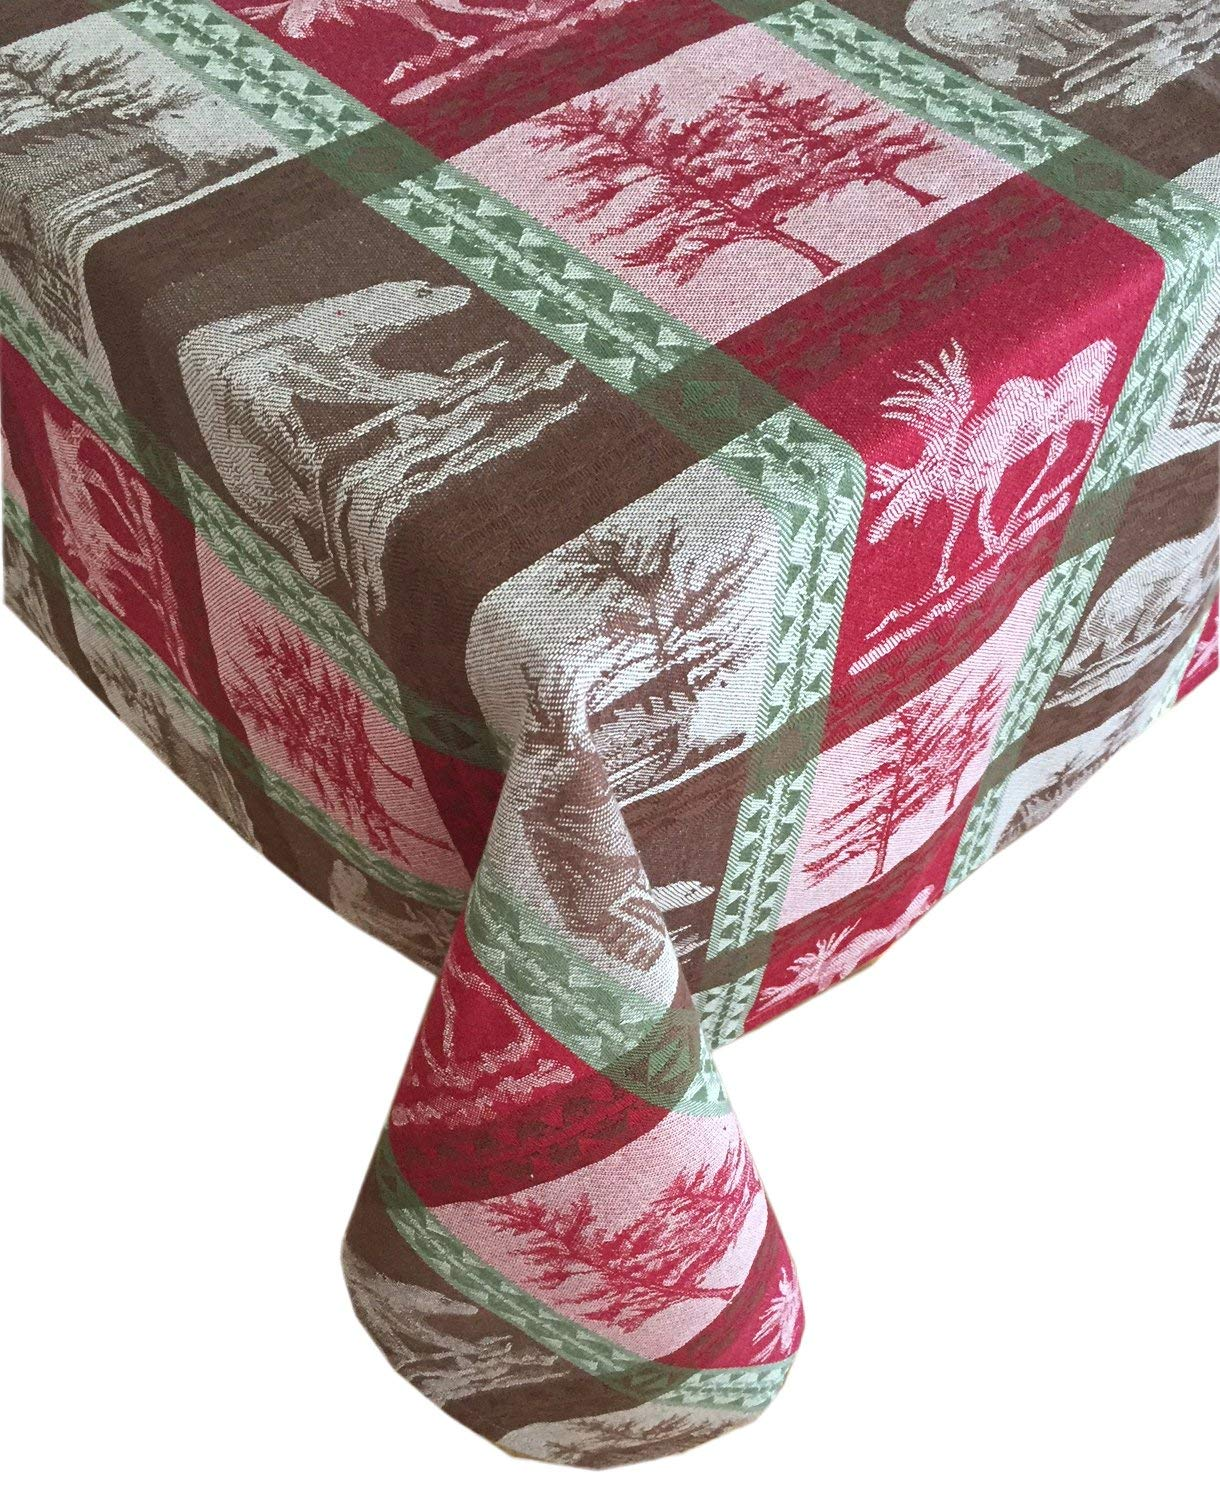 """Newbridge Christmas Wildlife Country Rustic Lodge Plaid, Moose, Bear and Cabin Cotton Jacquard Weave Holiday Tablecloth, 100% Cotton, 60"""" x 84"""" Oblong/Rectangle"""